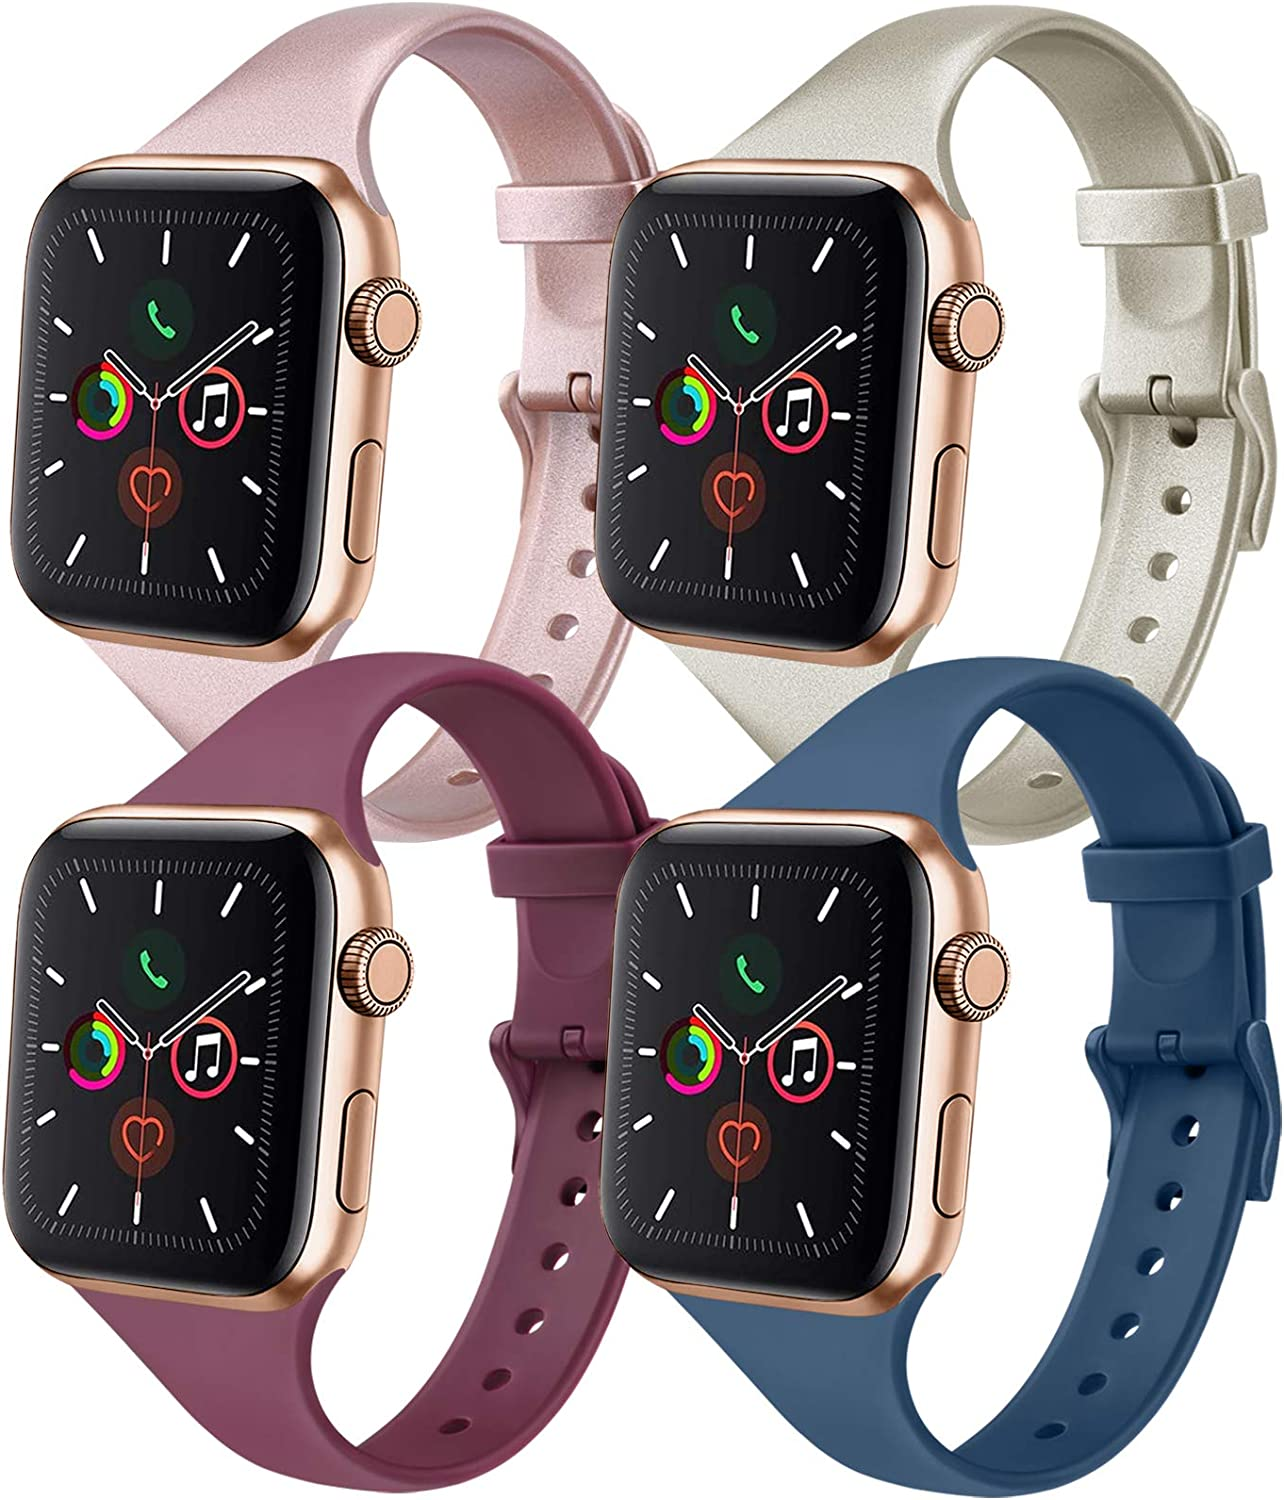 IEOVIEE [Pack 4] Silicone Slim Bands Compatible with Apple Watch Bands 42mm 38mm 44mm 40mm Series 6 5 4 3 & SE, Narrow Replacement Wristbands (Rose Gold/Champagne/Wine Red/Navy Blue, 38mm/40mm S/M)